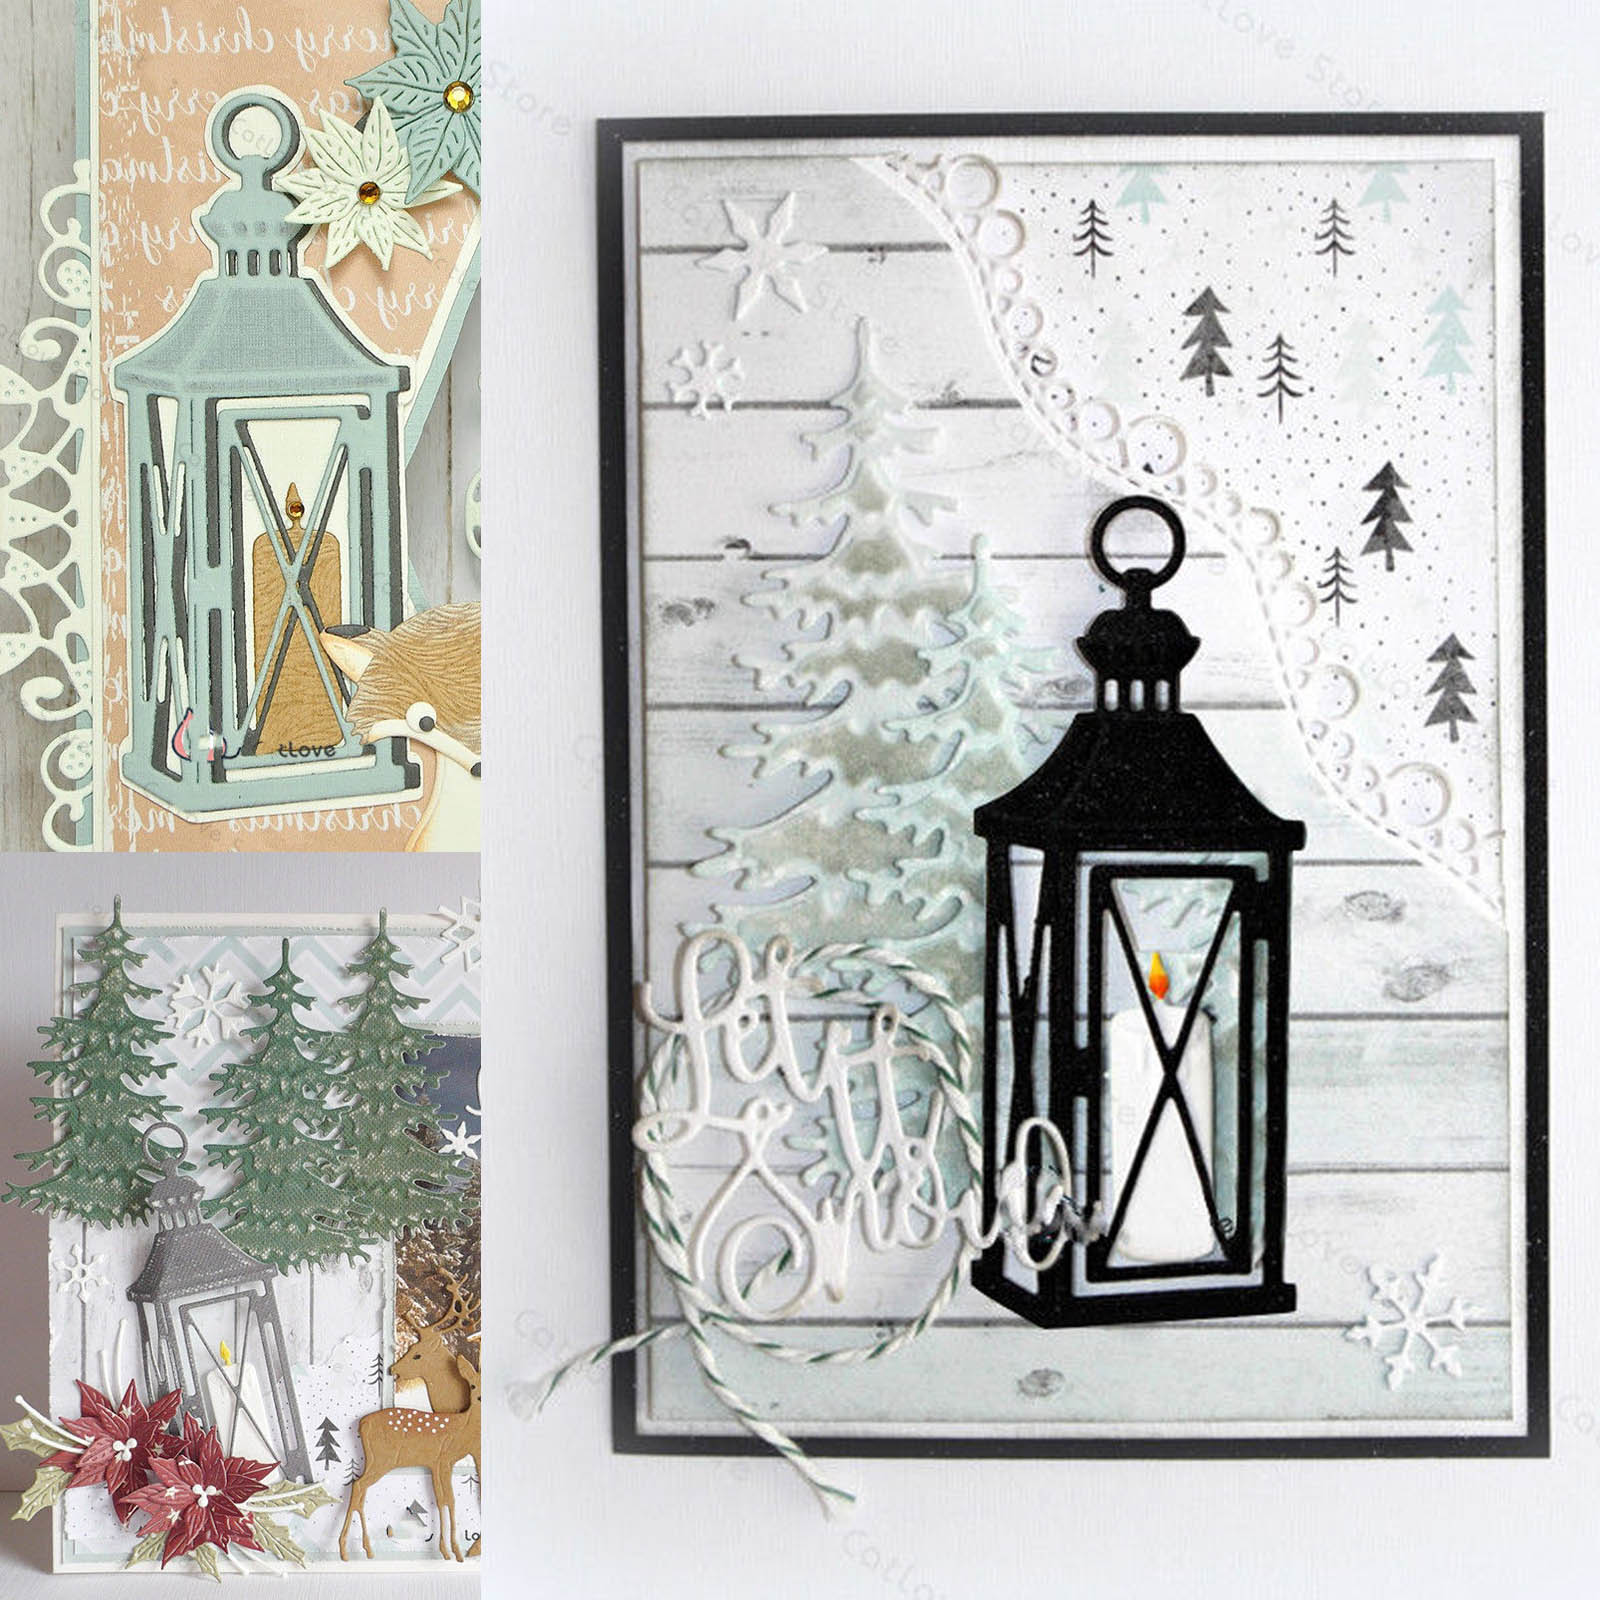 Candle Light Metal Cutting Dies Stencils Scrapbooking Decor Craft Embossing DIY